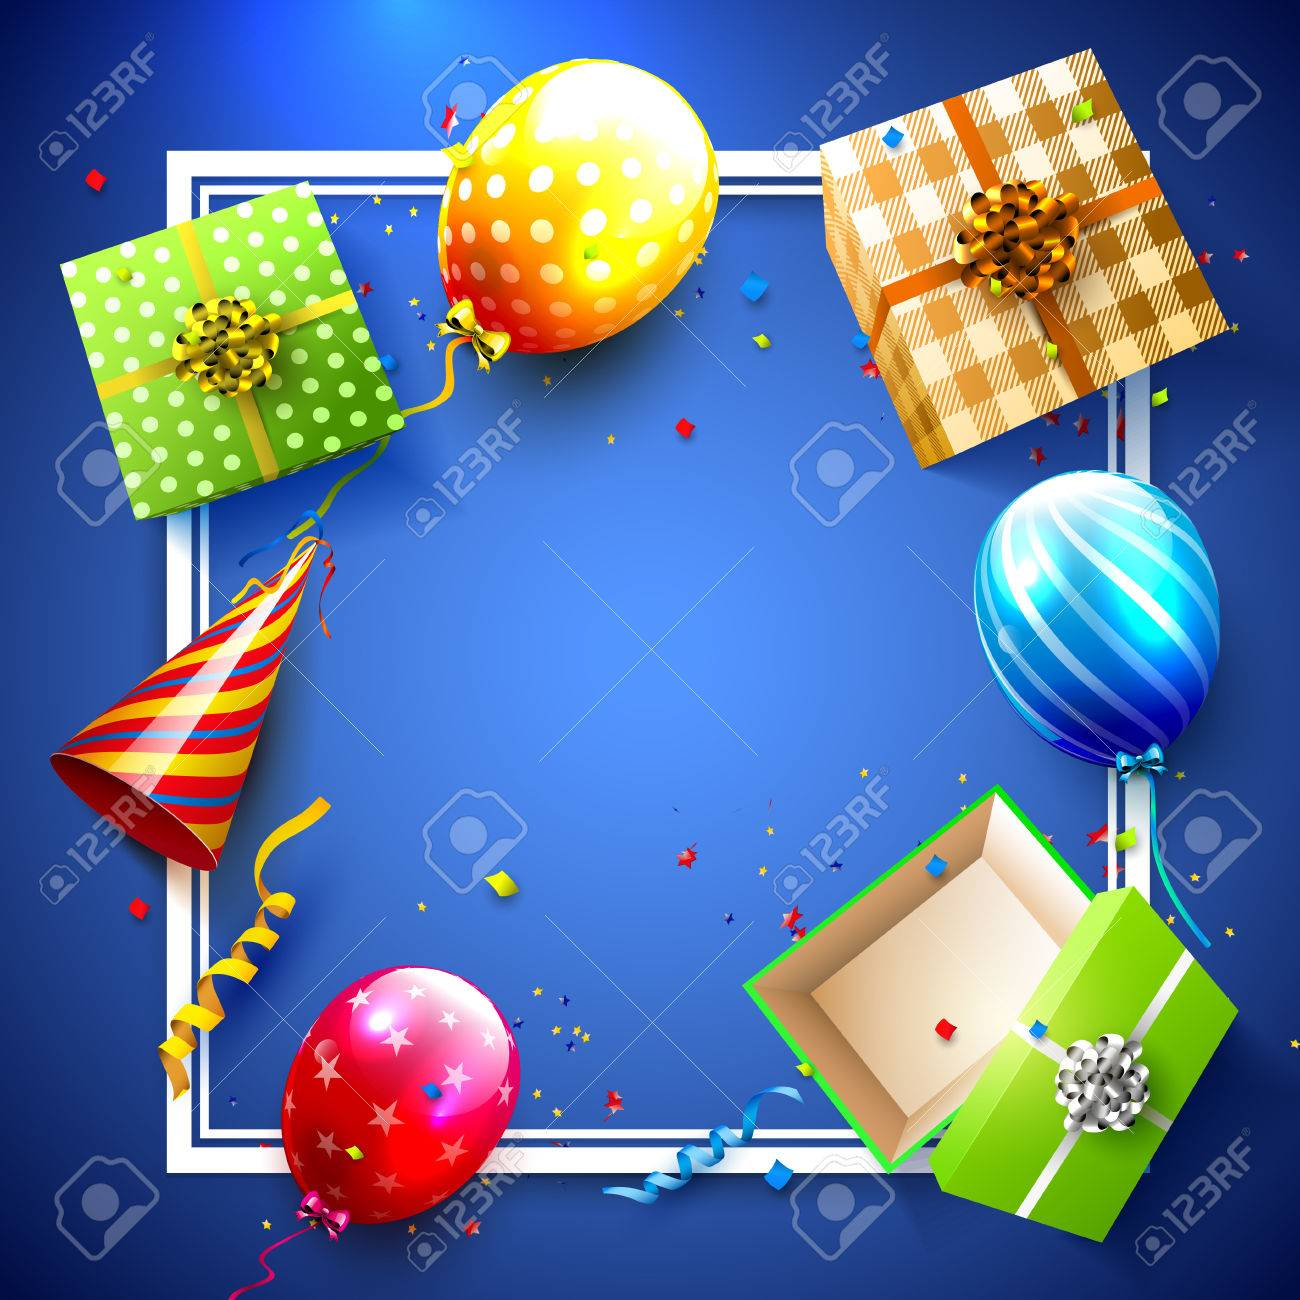 luxury party balloons confetti and gift boxes on blue background